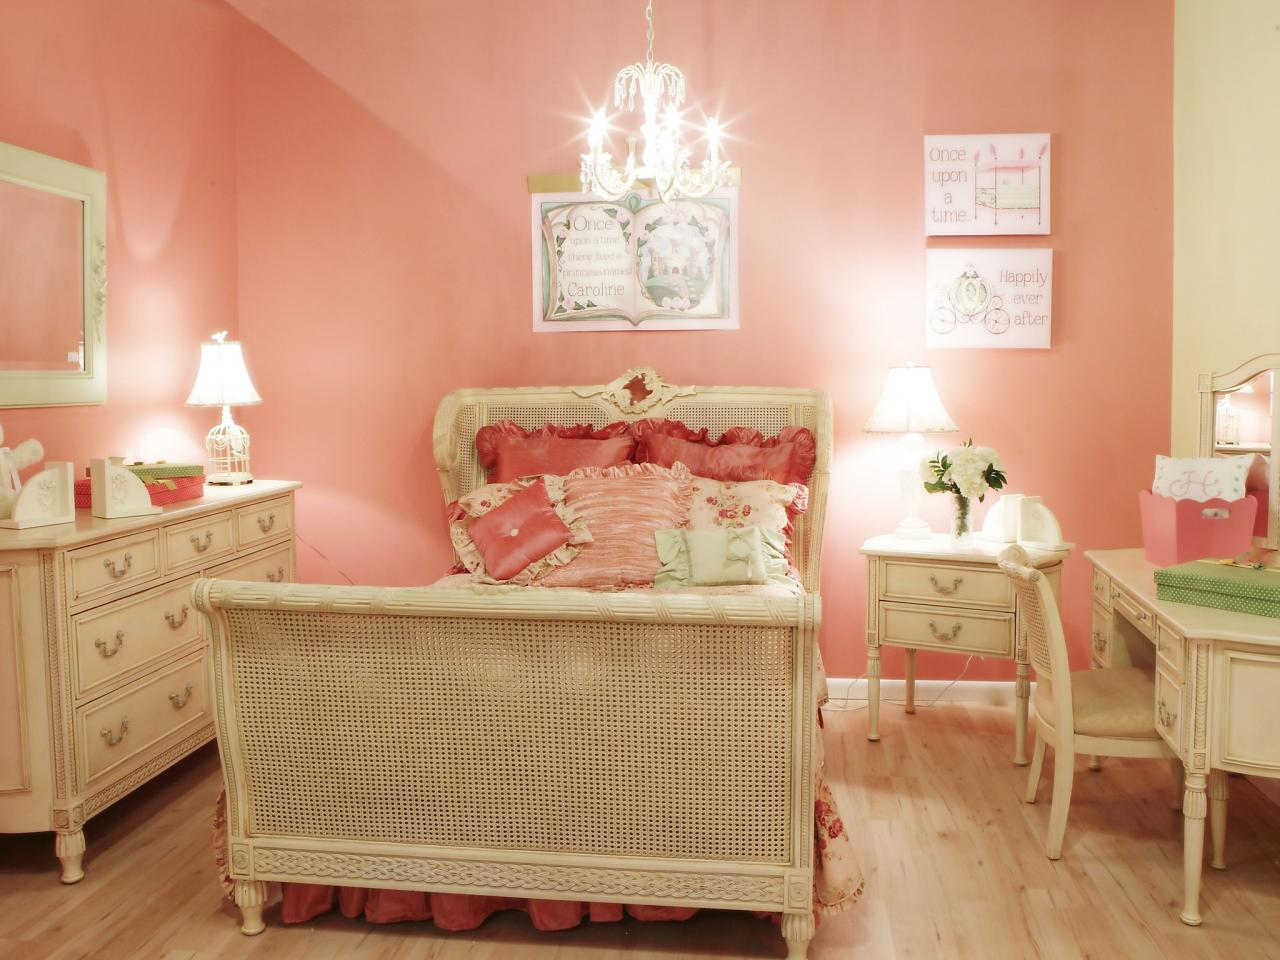 Wall paint colors for girls bedroom - Girls Bedroom Color Schemes